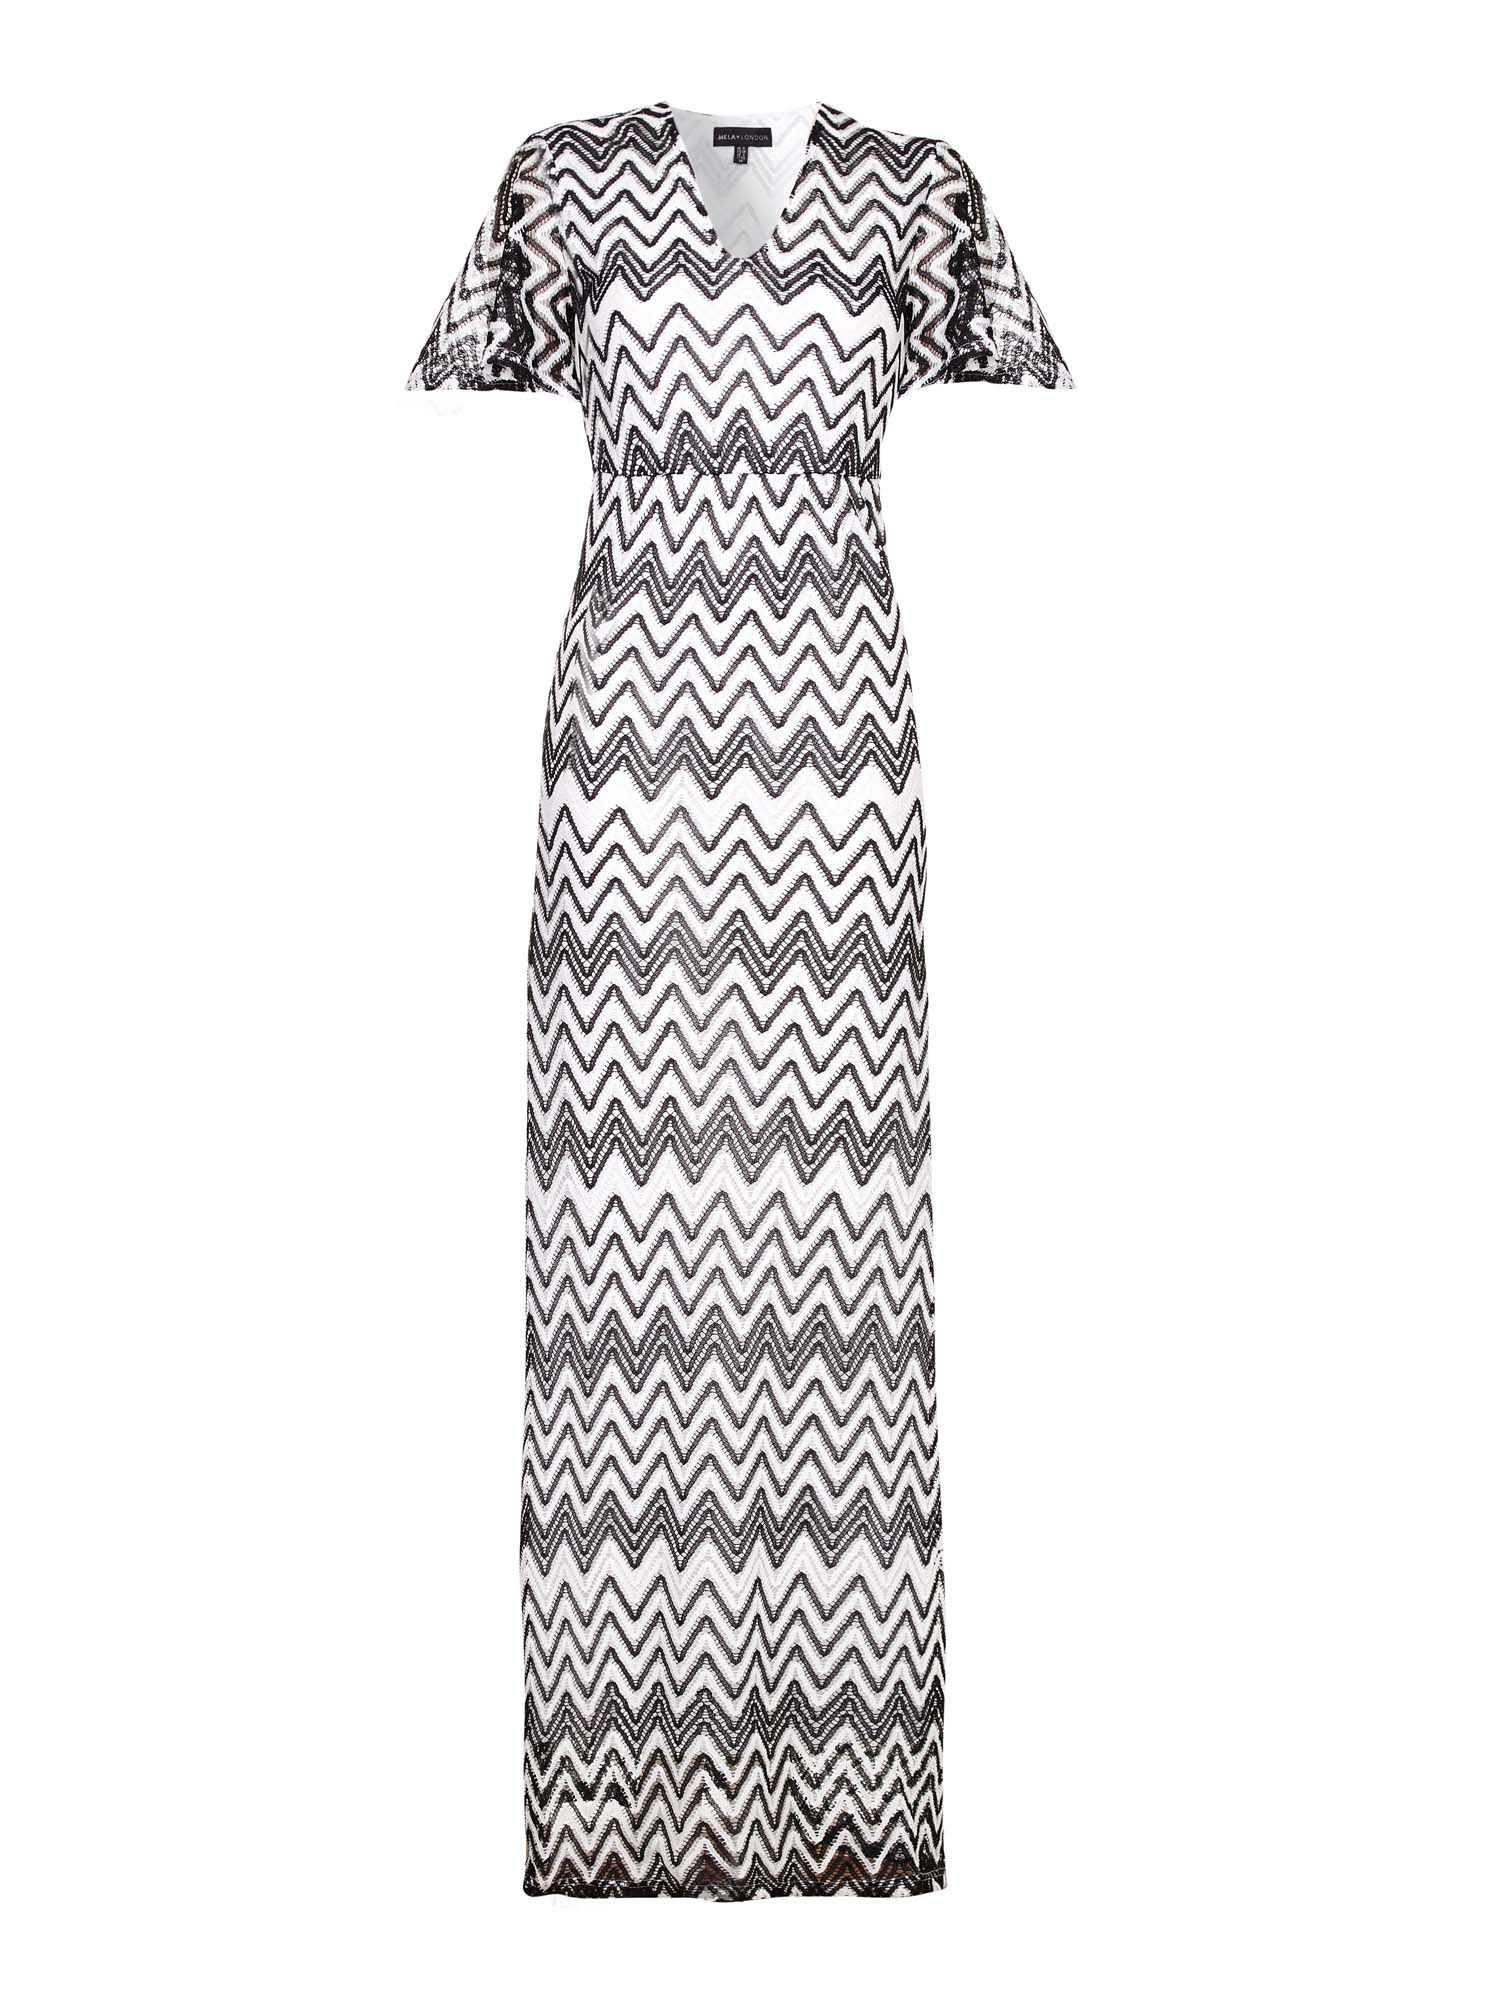 Mela London Lace Chevron Kimono Maxi Dress BlackWhite